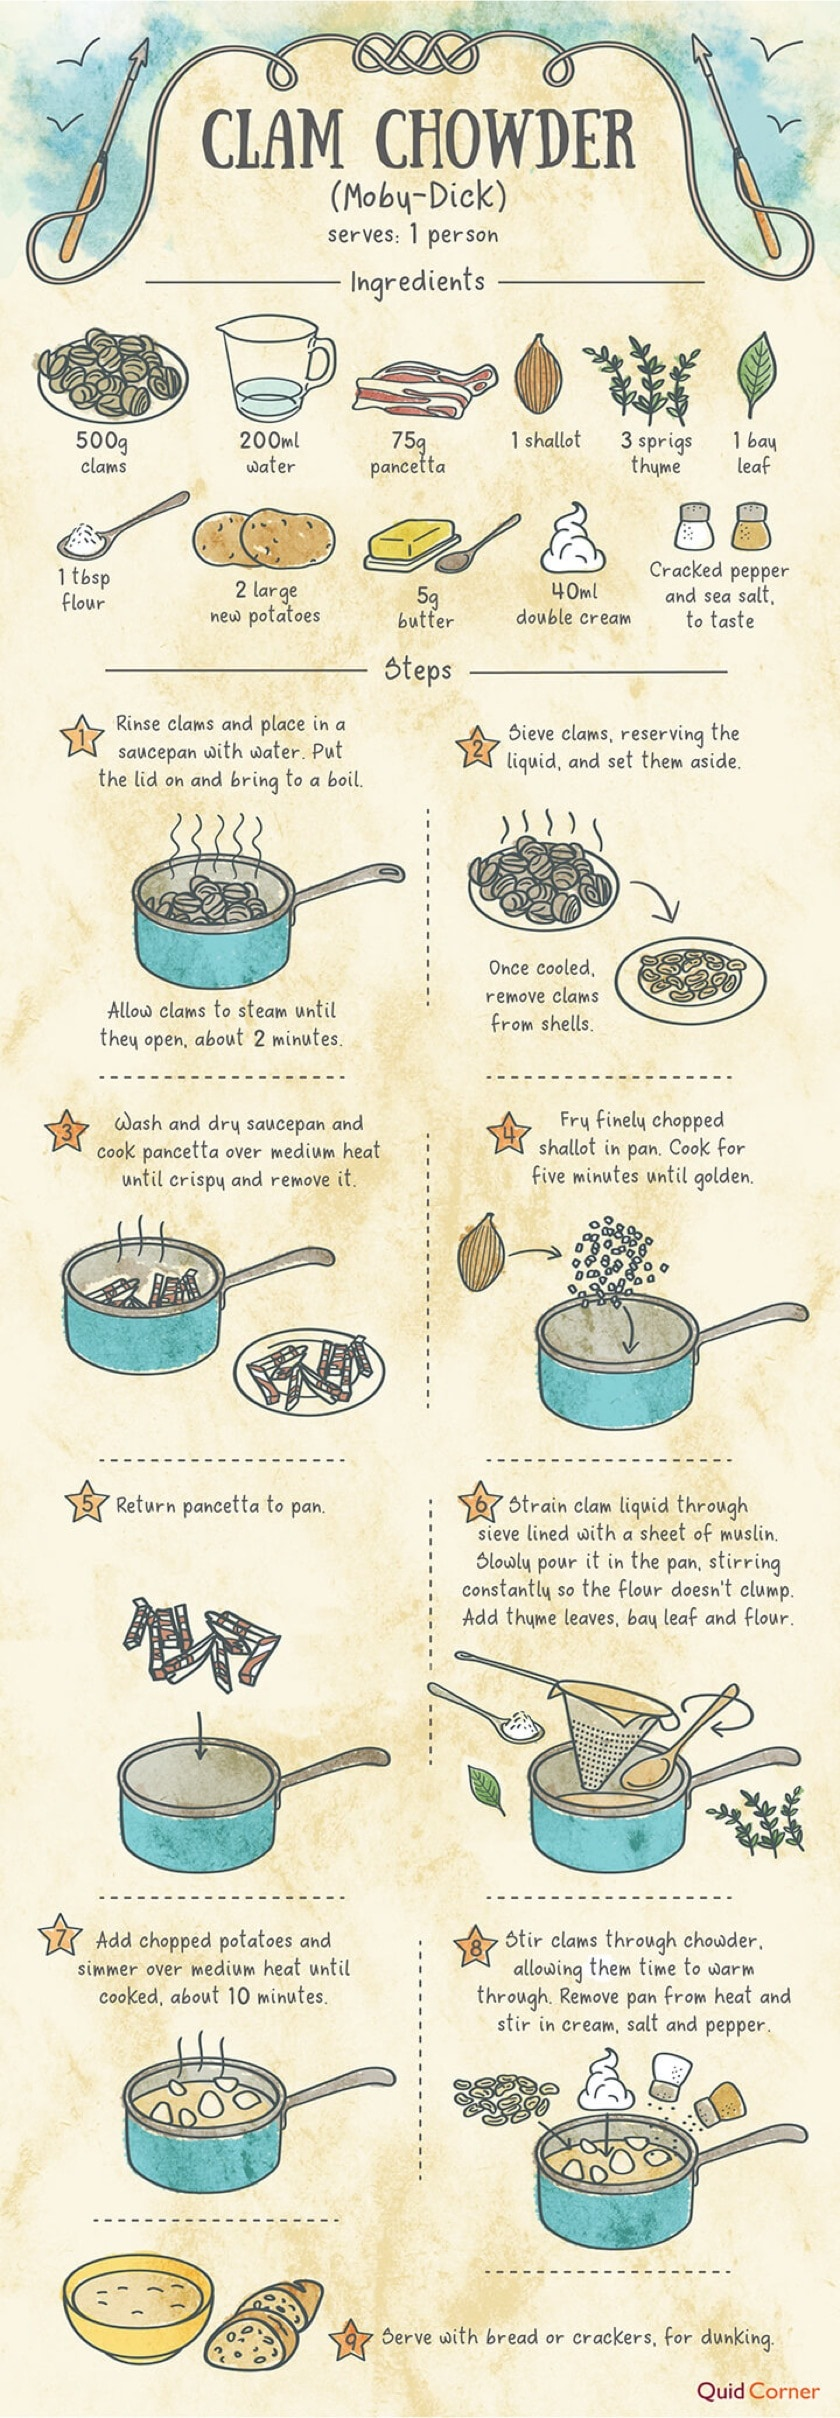 How to make clam chowder from Moby-Dick